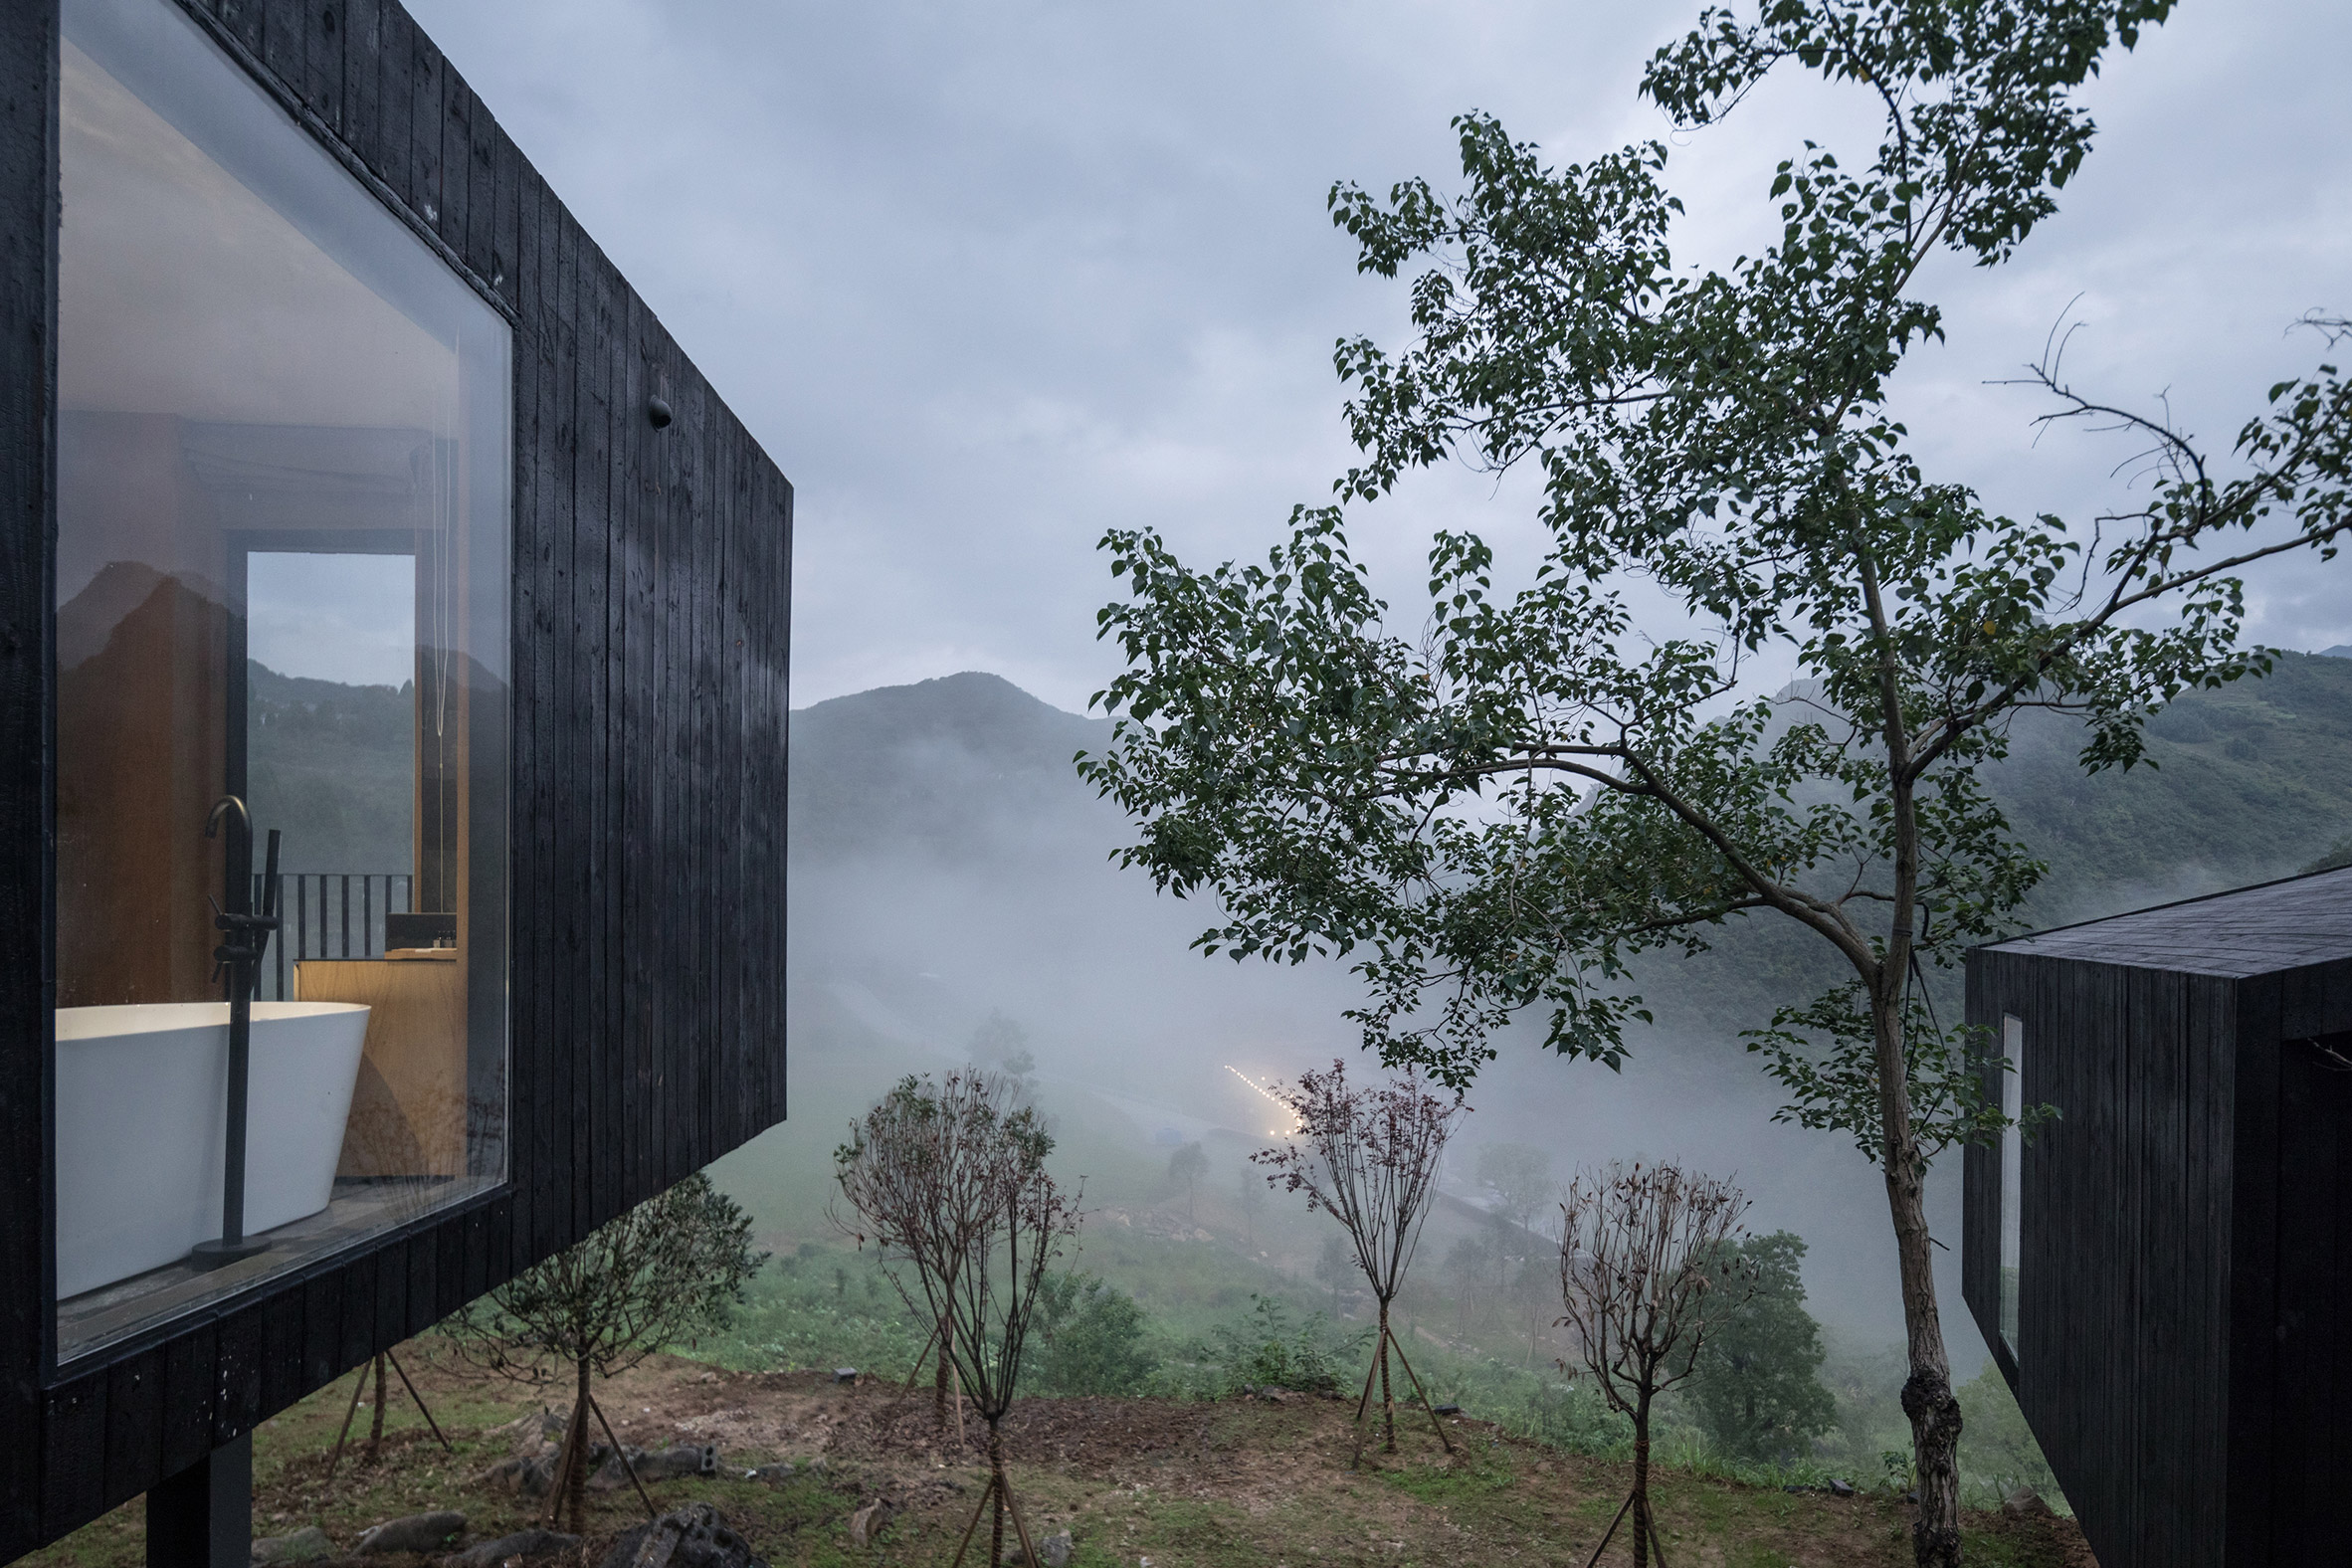 Blackened wood cabins raised above the ground